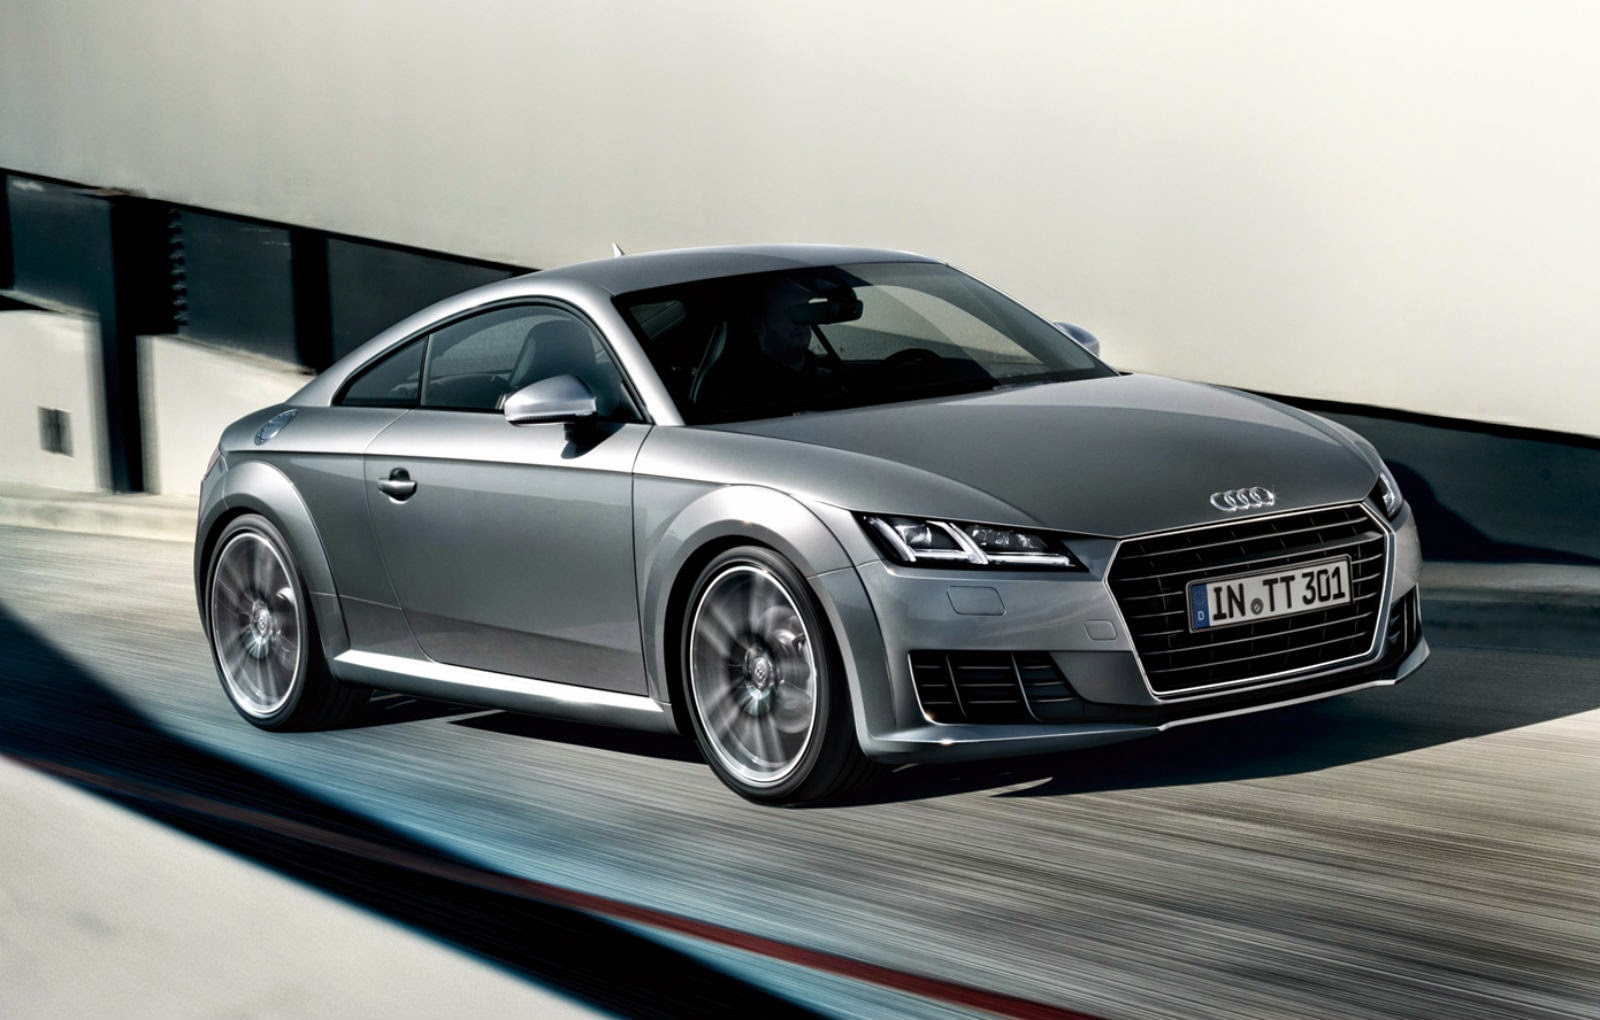 2015 Audi tt price and Release Date